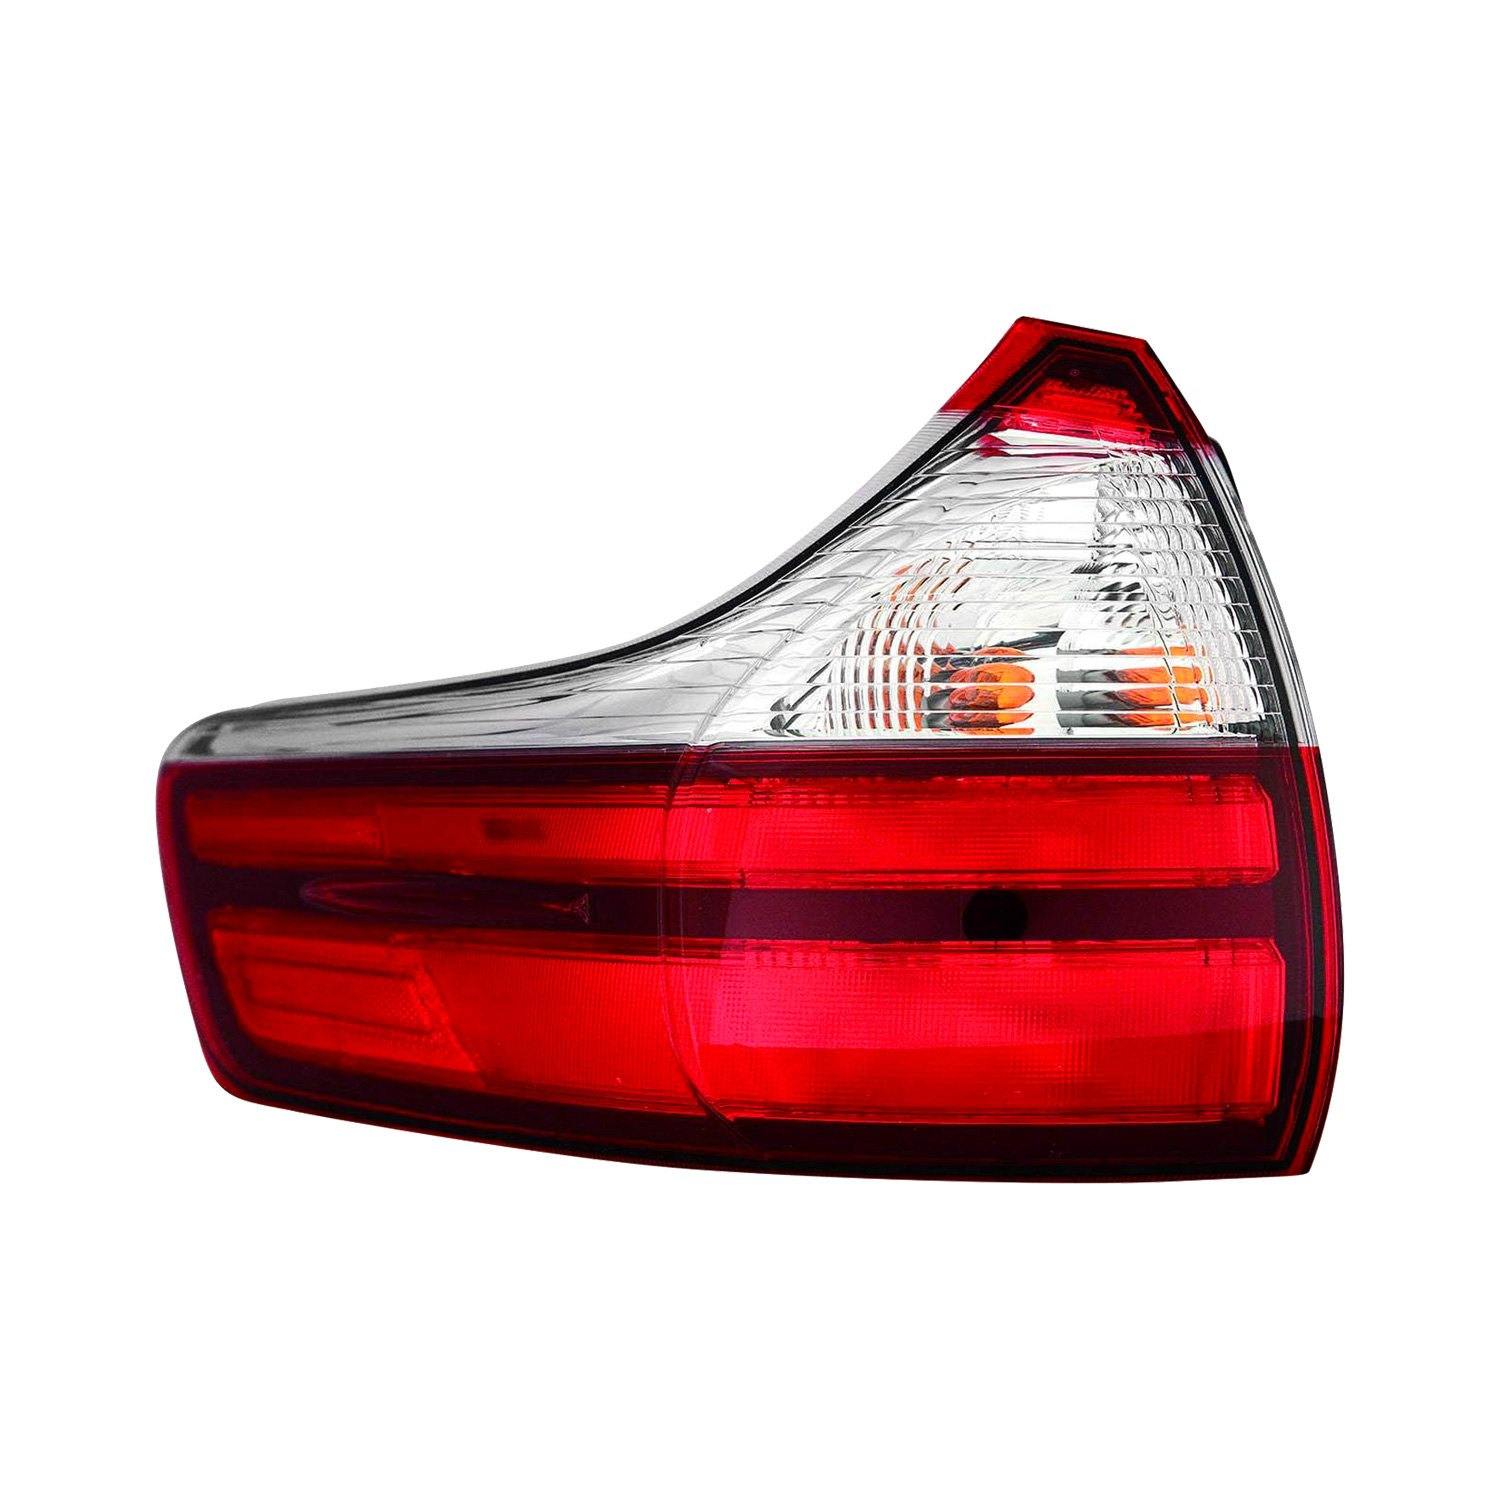 depo toyota sienna 2017 replacement tail light. Black Bedroom Furniture Sets. Home Design Ideas